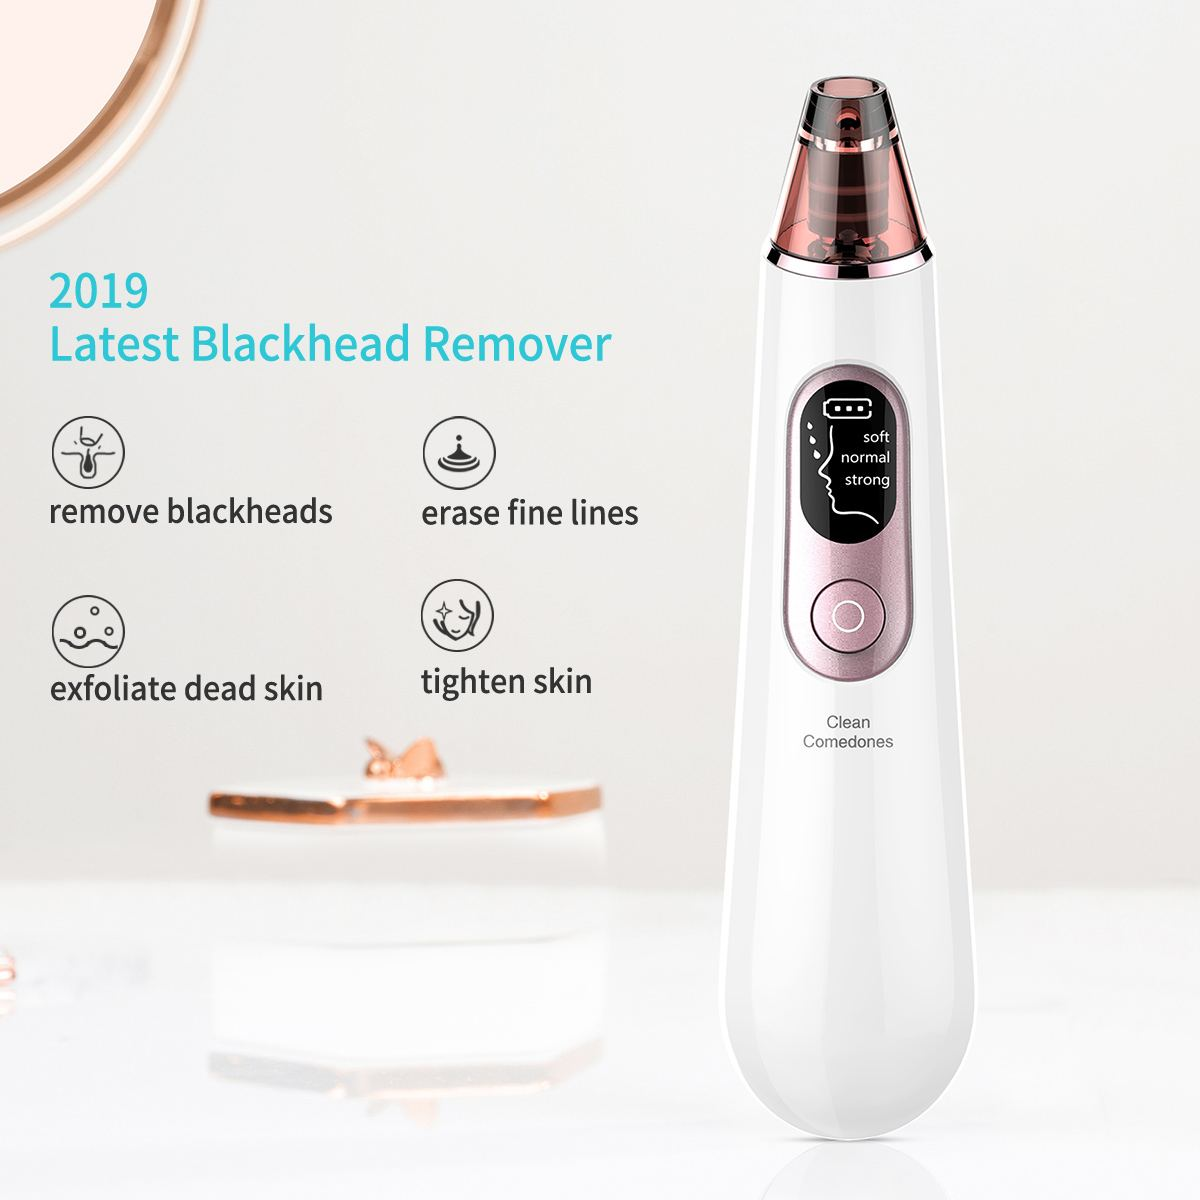 Face Nose Acne Black Dot Pimple Blackhead Remover Electric Blackhead Vacuum Cleaner Pore Blackhead Skin Care Tools Machine